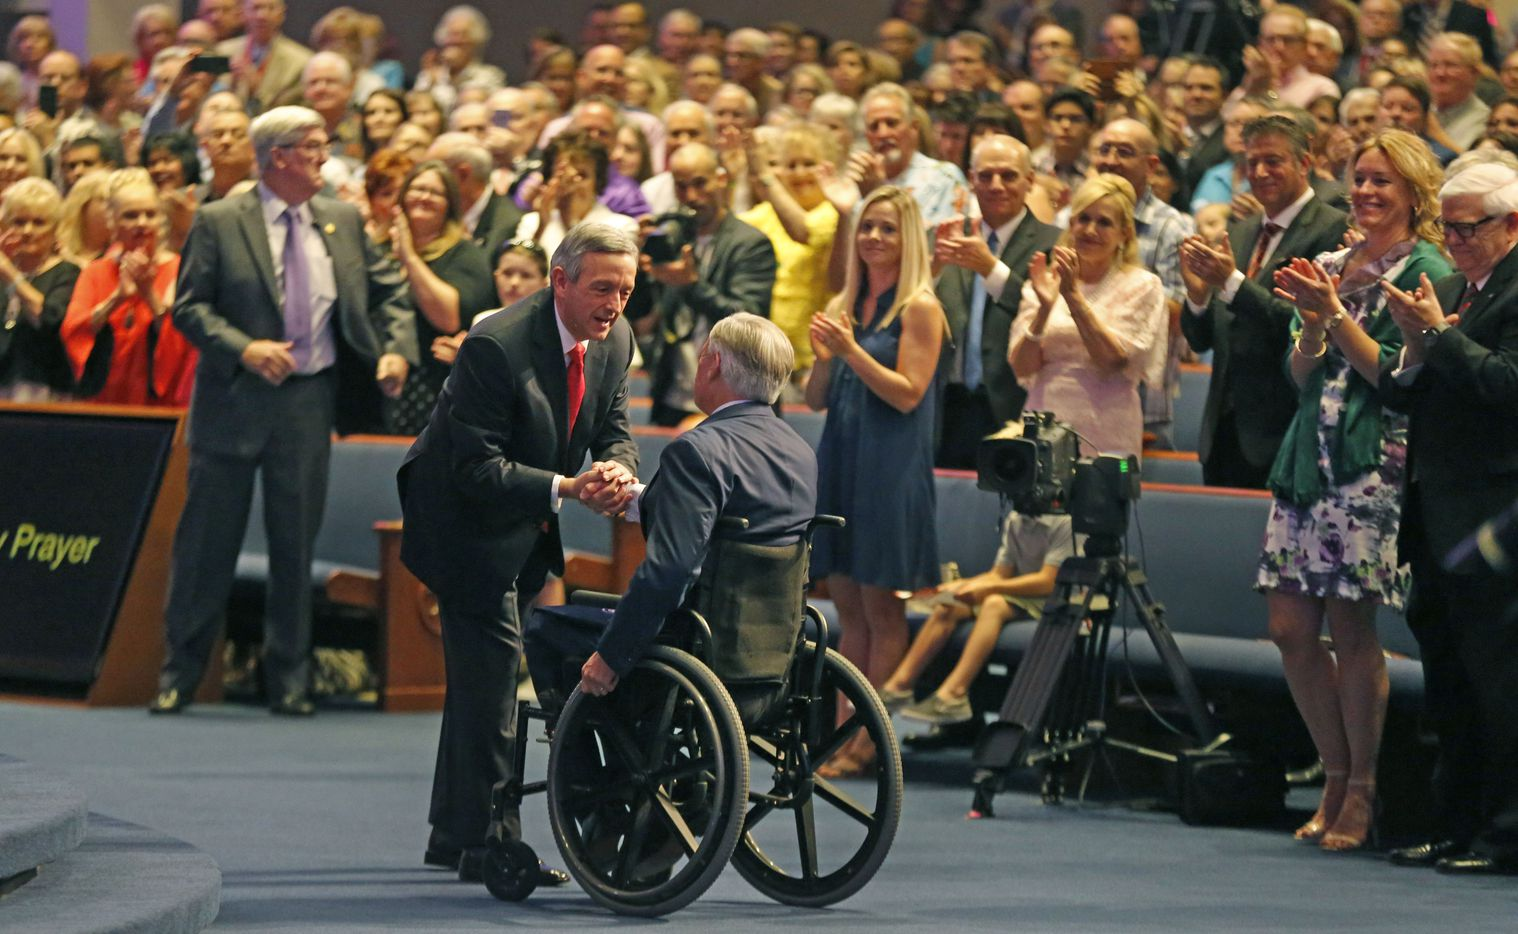 First Baptist Dallas pastor Dr. Robert Jeffress greets Texas Governor Greg Abbott during the 150th anniversary service at First Baptist Church of Dallas Sunday, July 29, 2018.